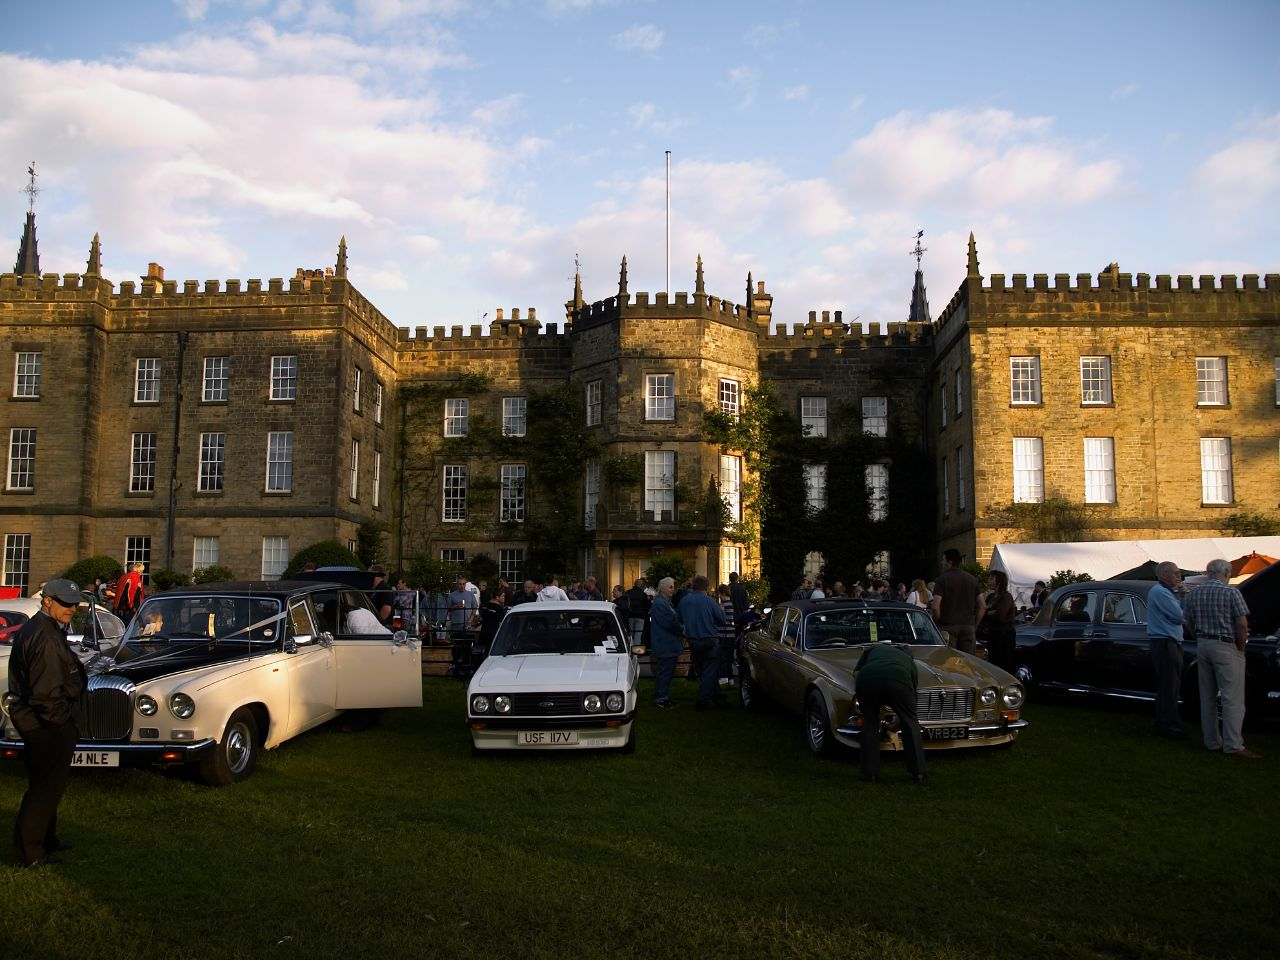 File:Renishaw Classic Car Show.jpg